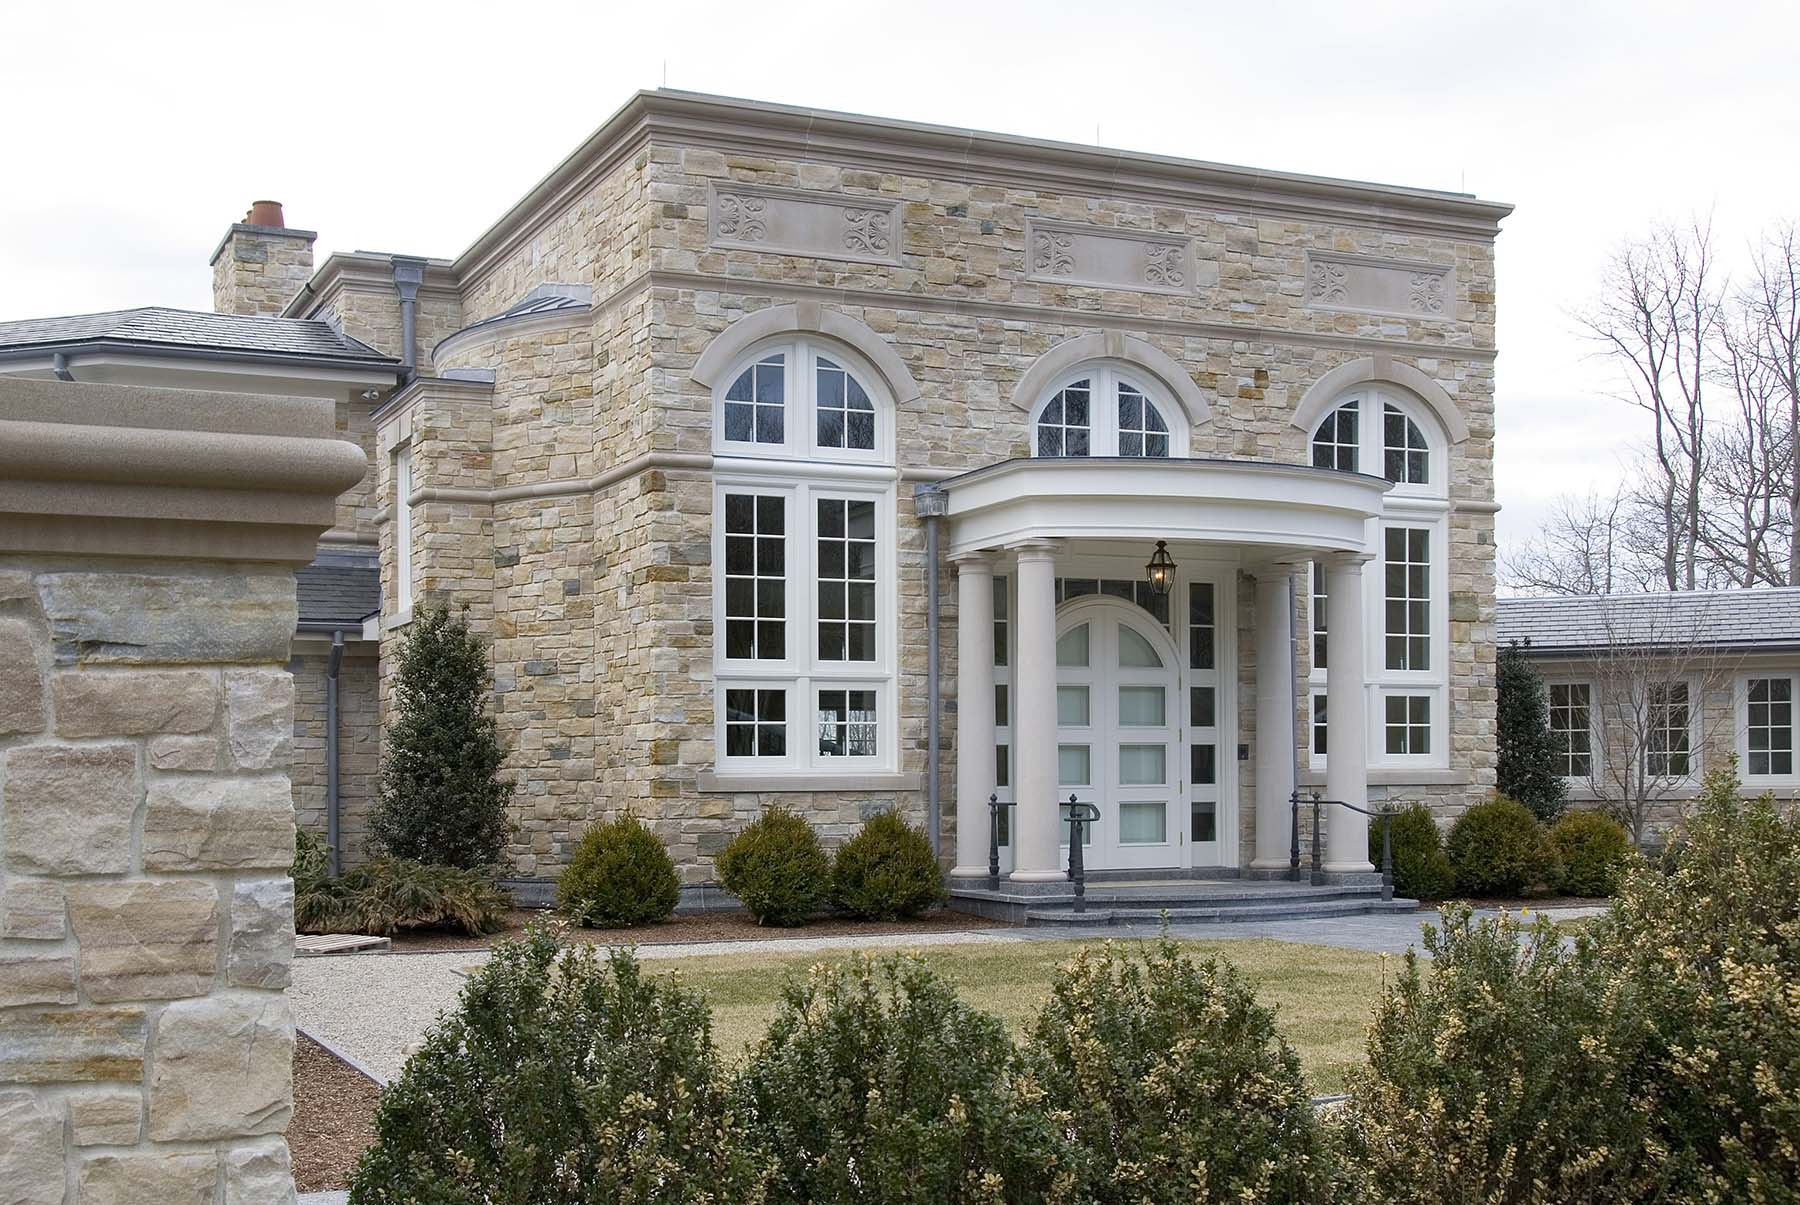 Building with South Bay Quartzite natural building stone exterior